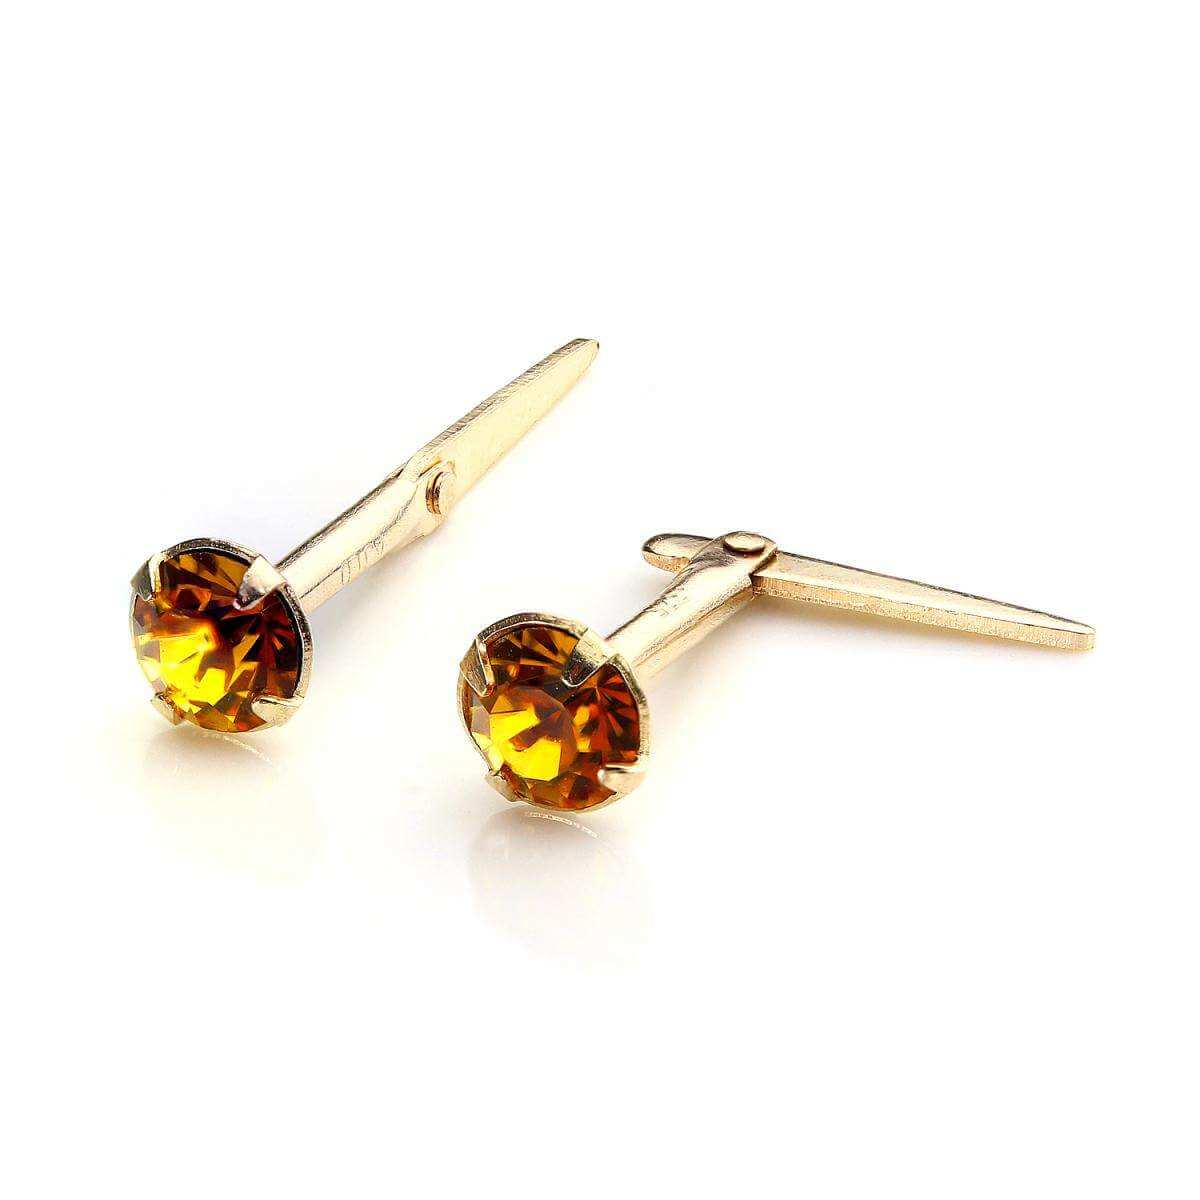 9ct Gold Andralok Stud Earrings with 3mm Topaz Crystal